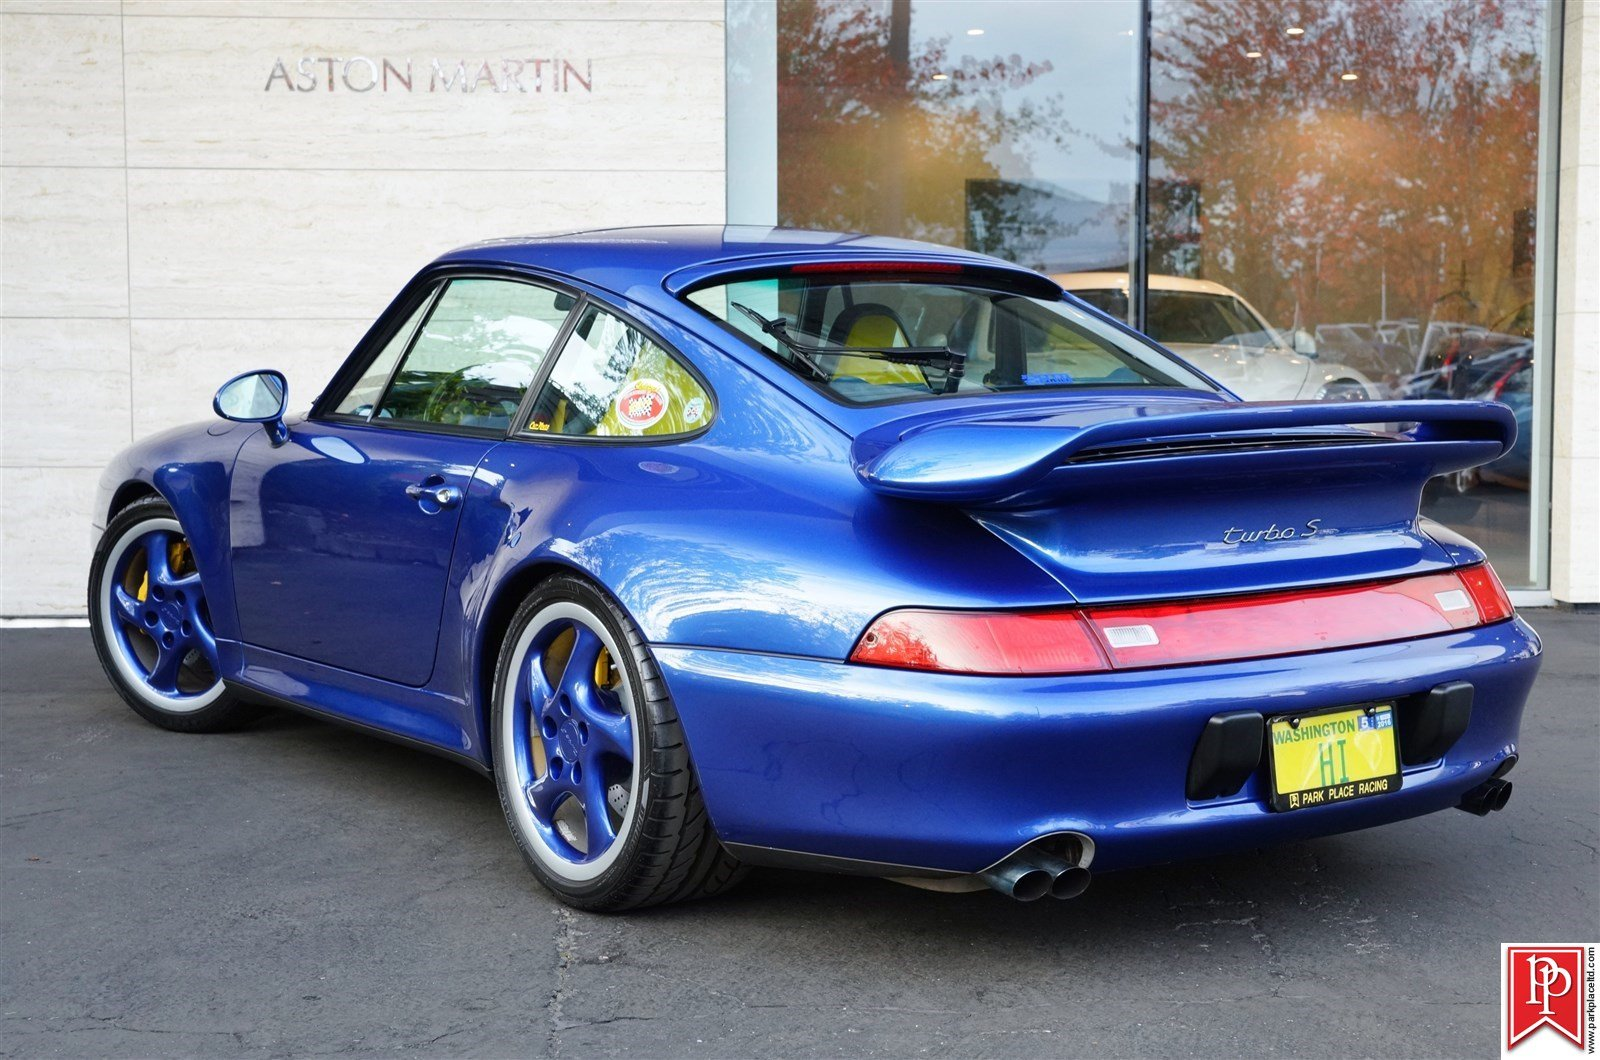 Nissan Of Bellevue >> The Finest Porsche 993 Turbo S on the Market | Supercar Report